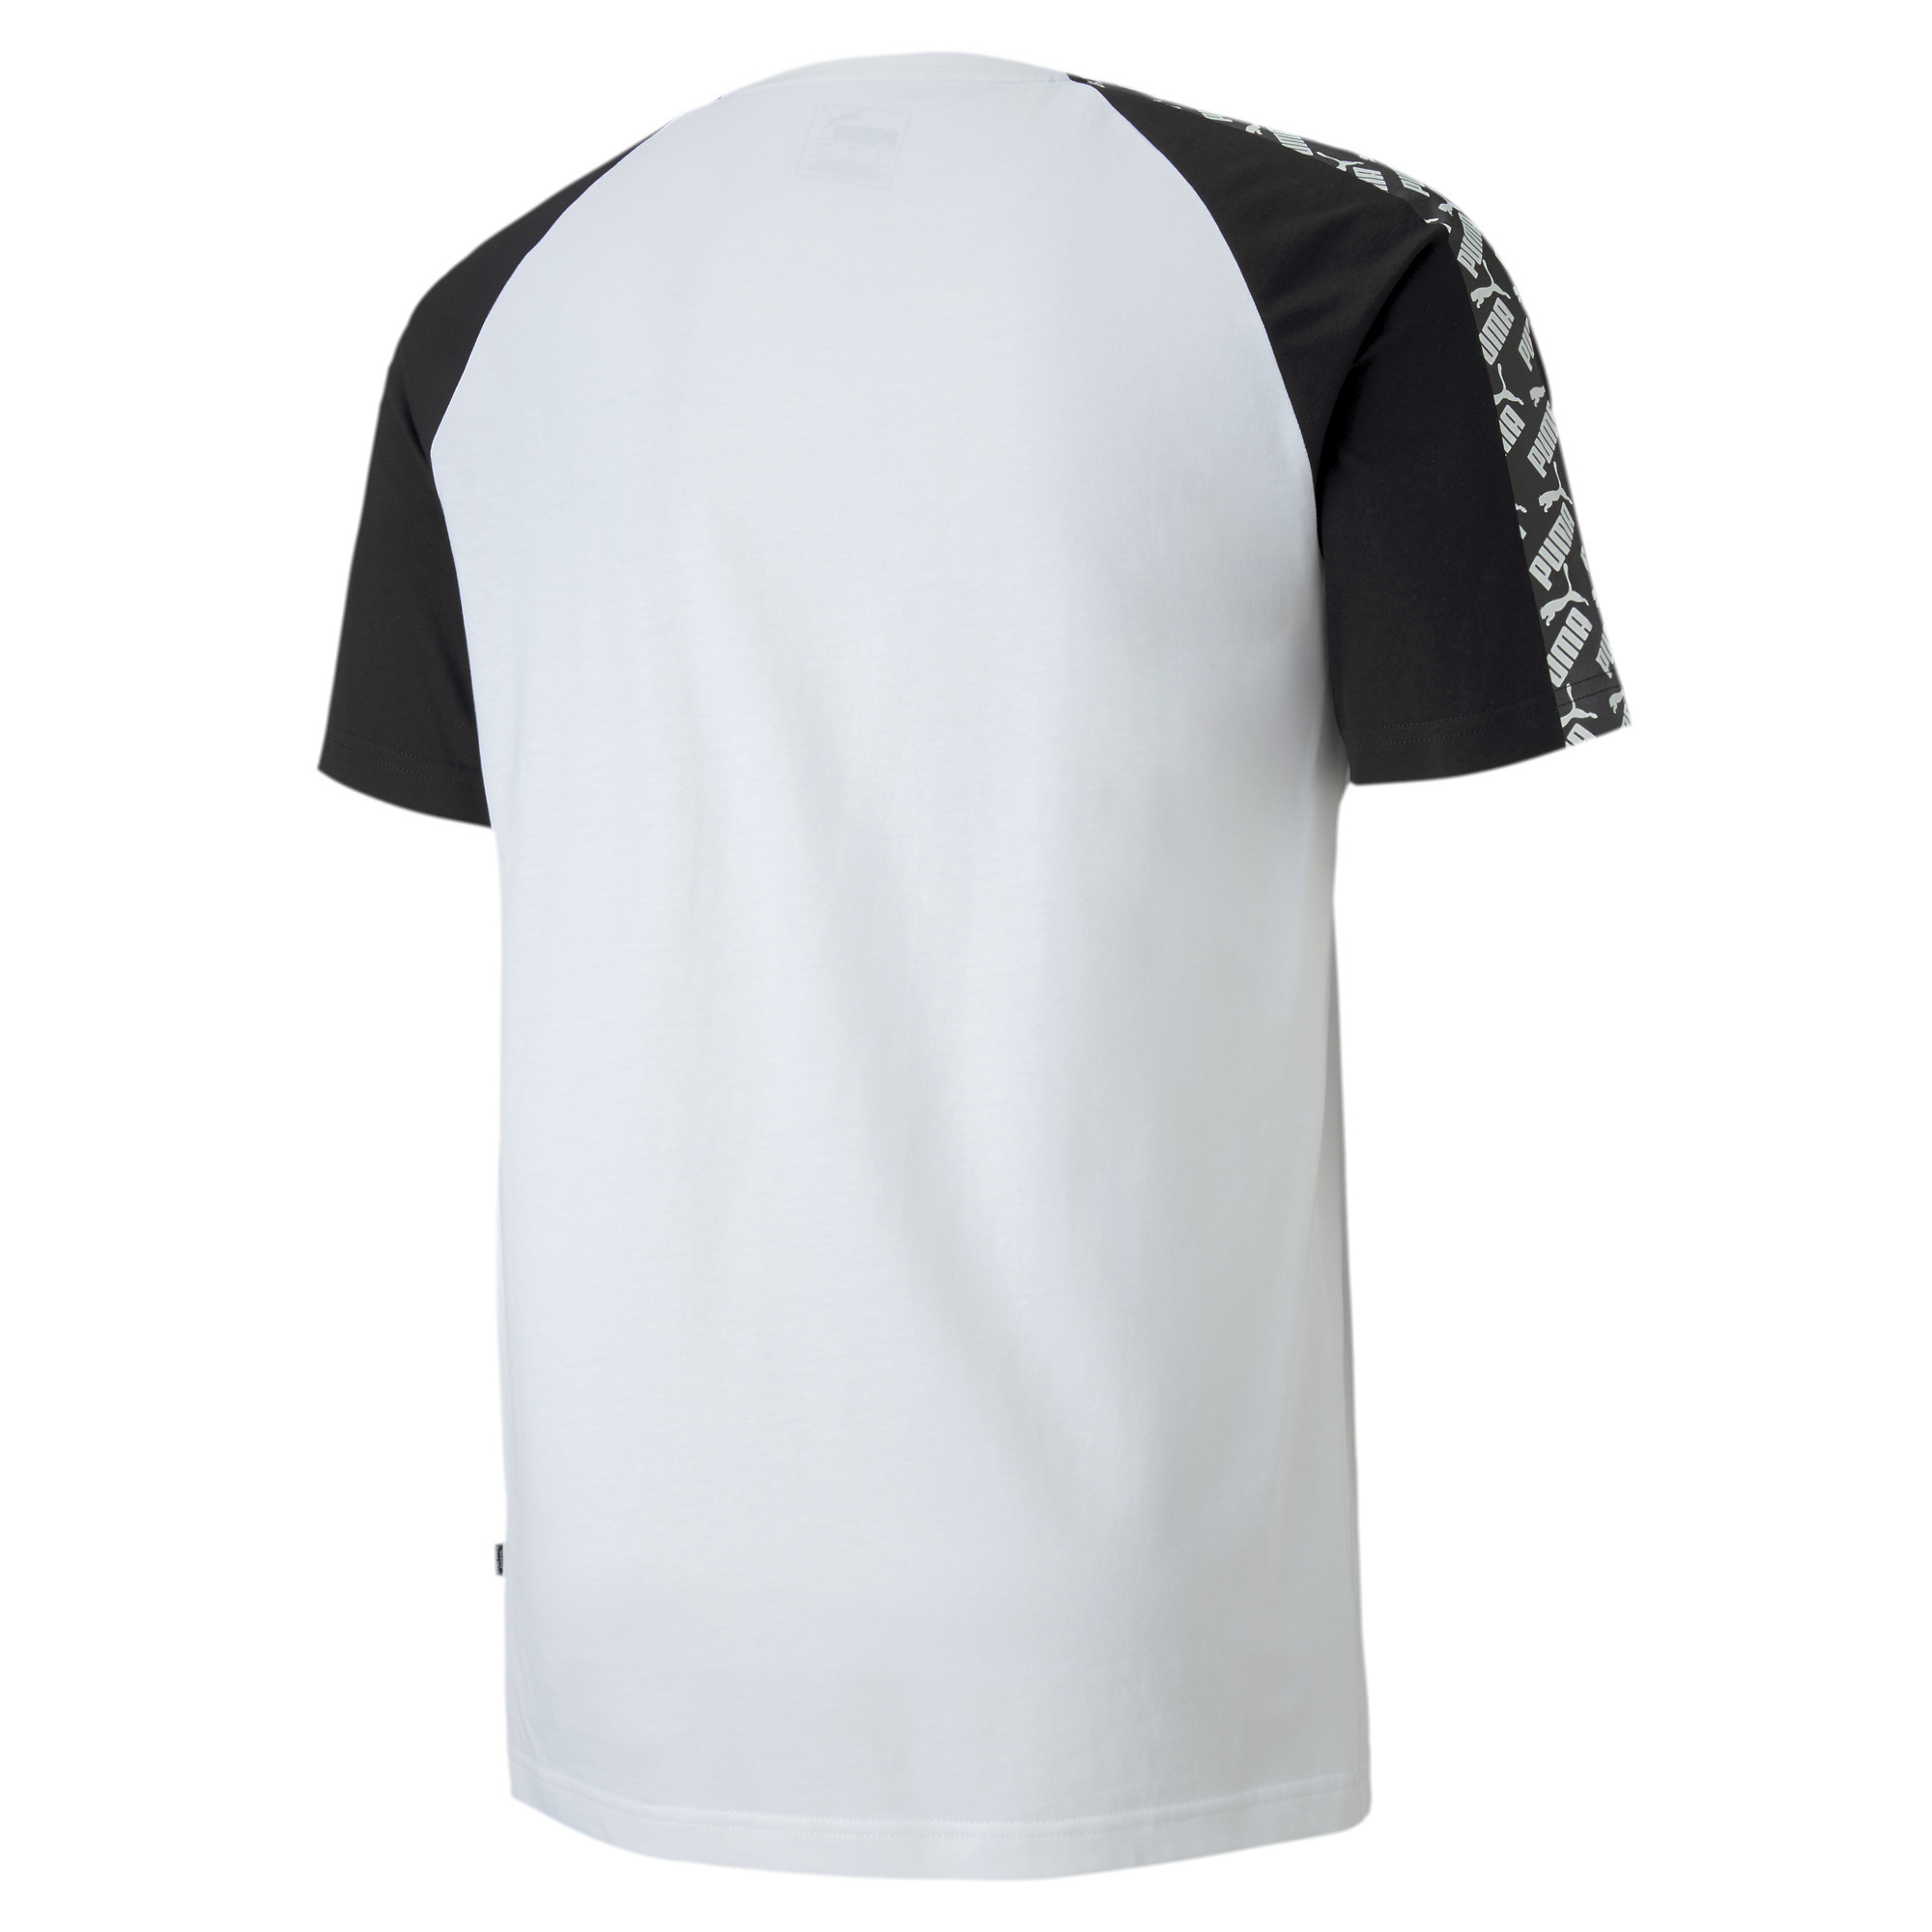 PUMA-Amplified-Men-039-s-Raglan-Tee-Men-Tee-Basics thumbnail 3